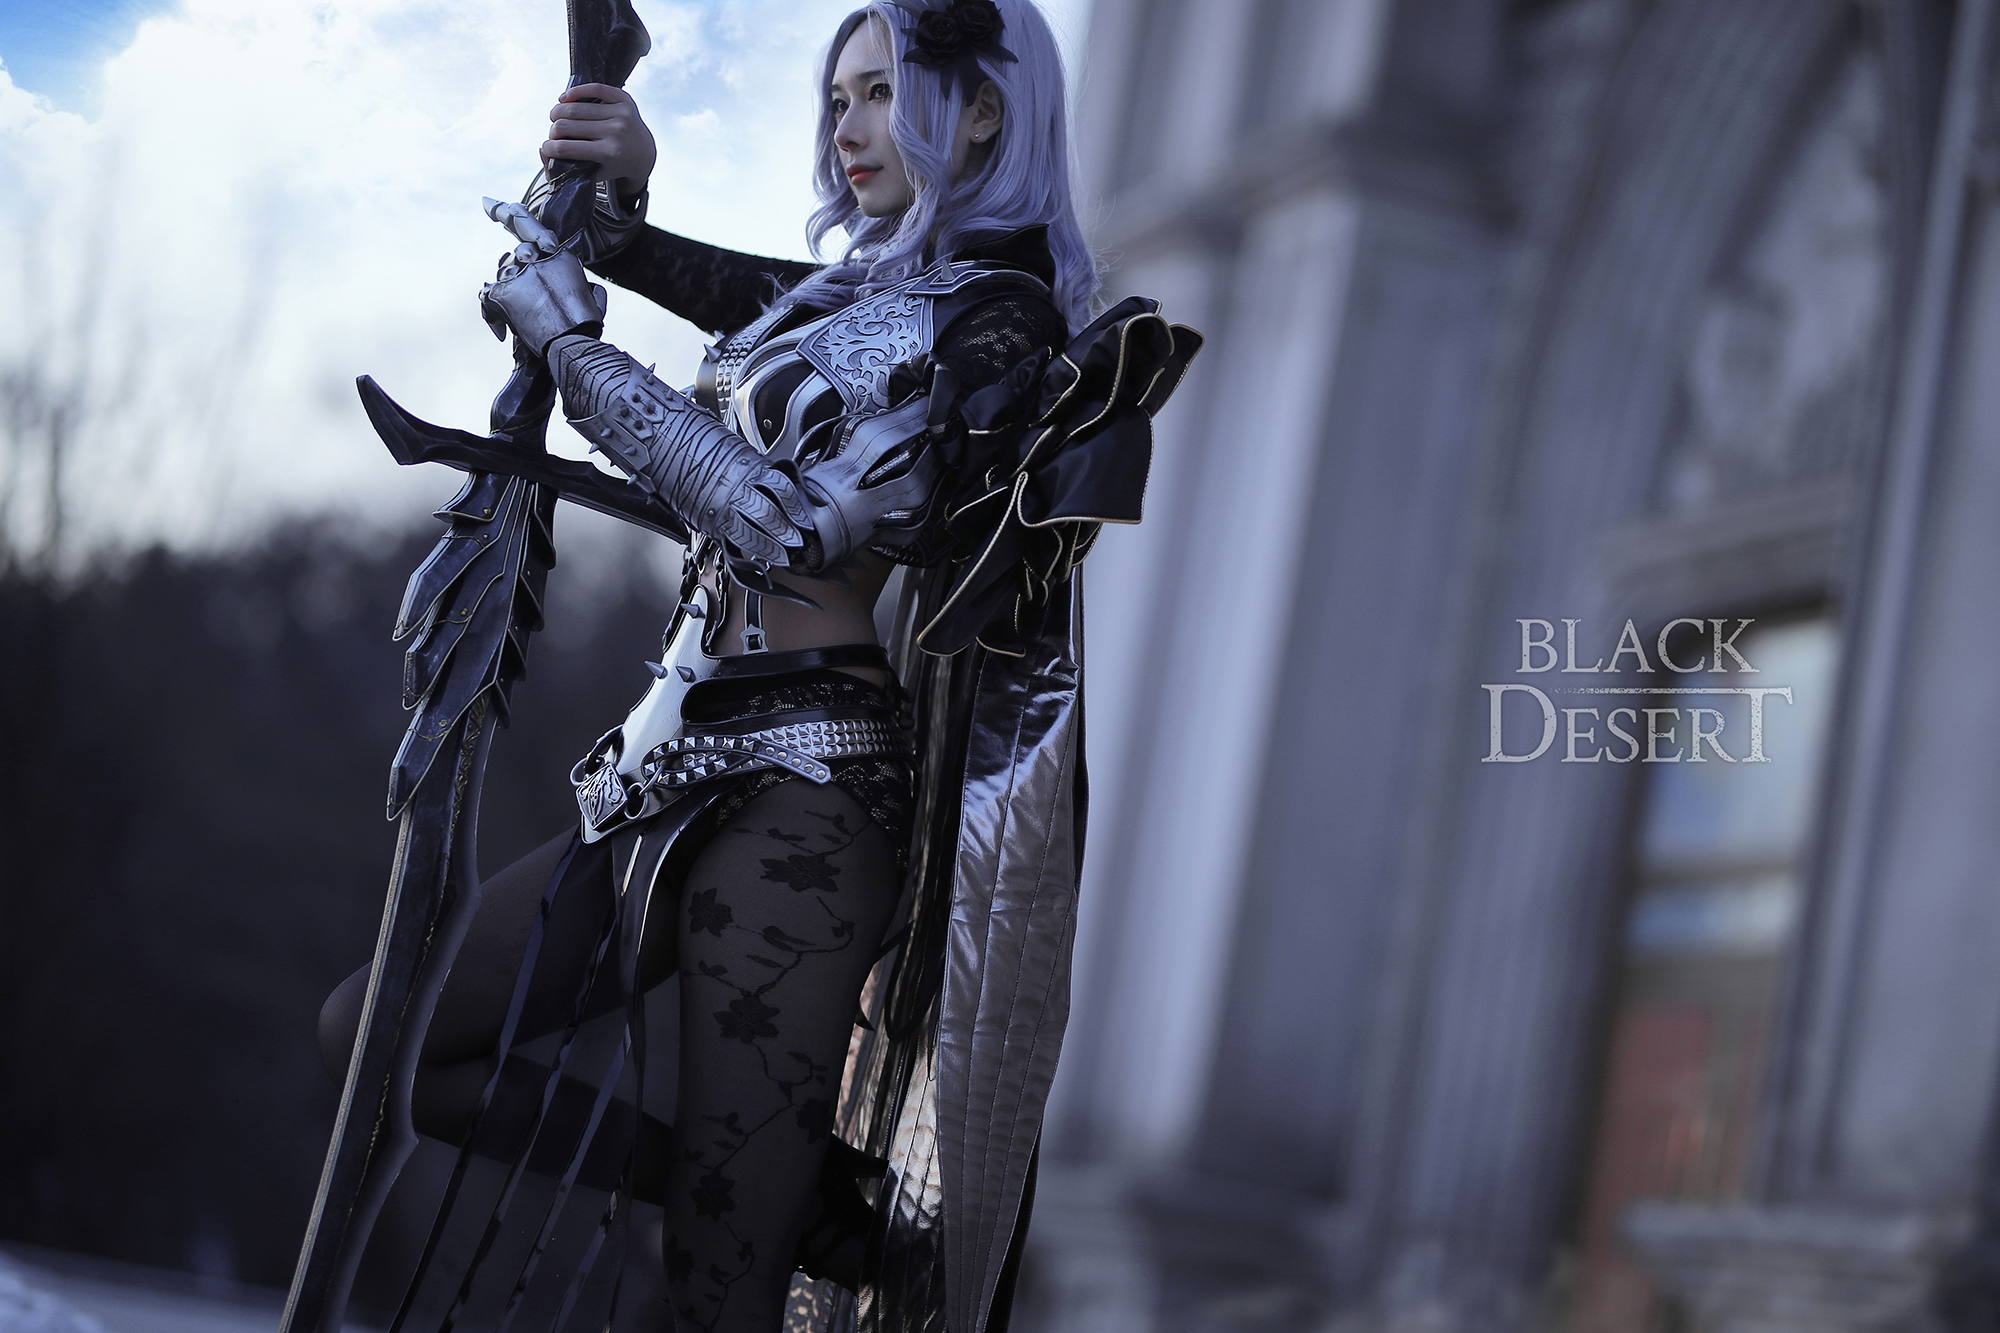 Dark Knight (Black Desert Online) by Rz cos,#Black#Knight